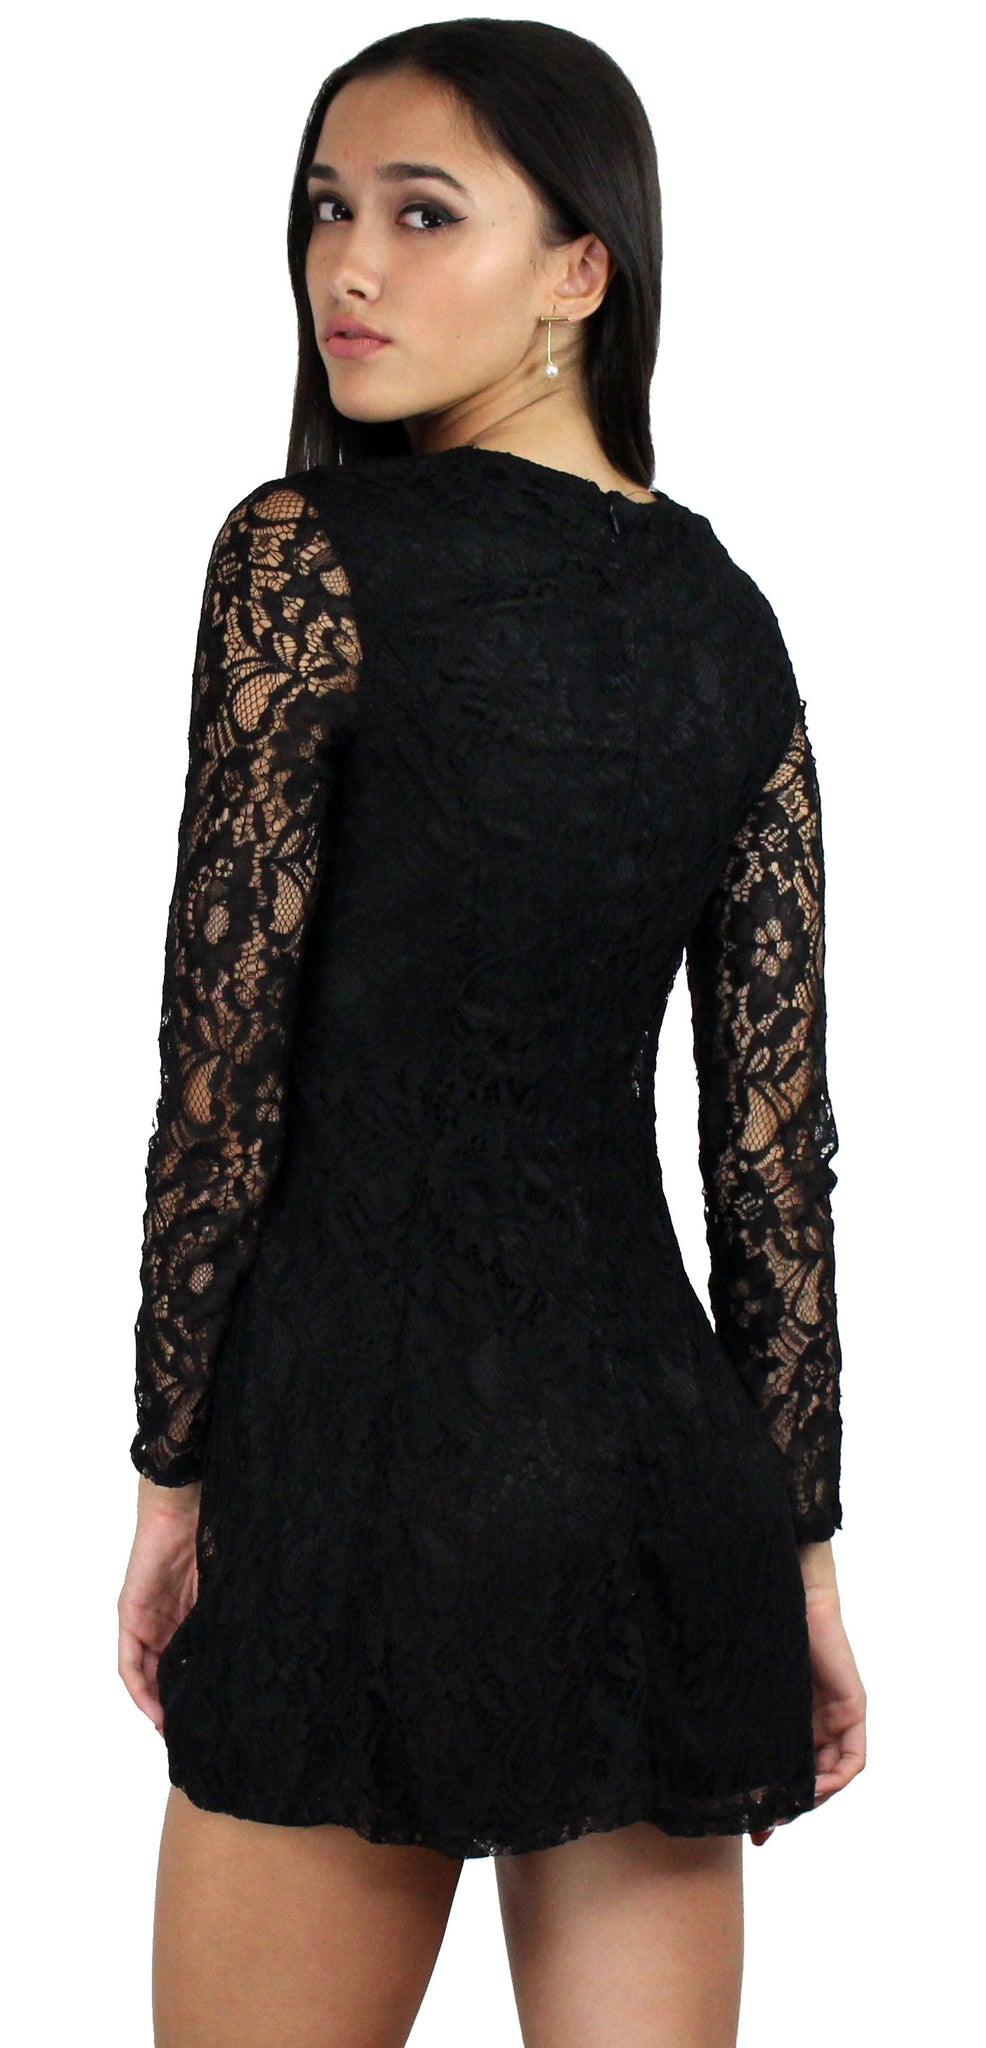 Sweeter Than Sugar Black Lace Dress